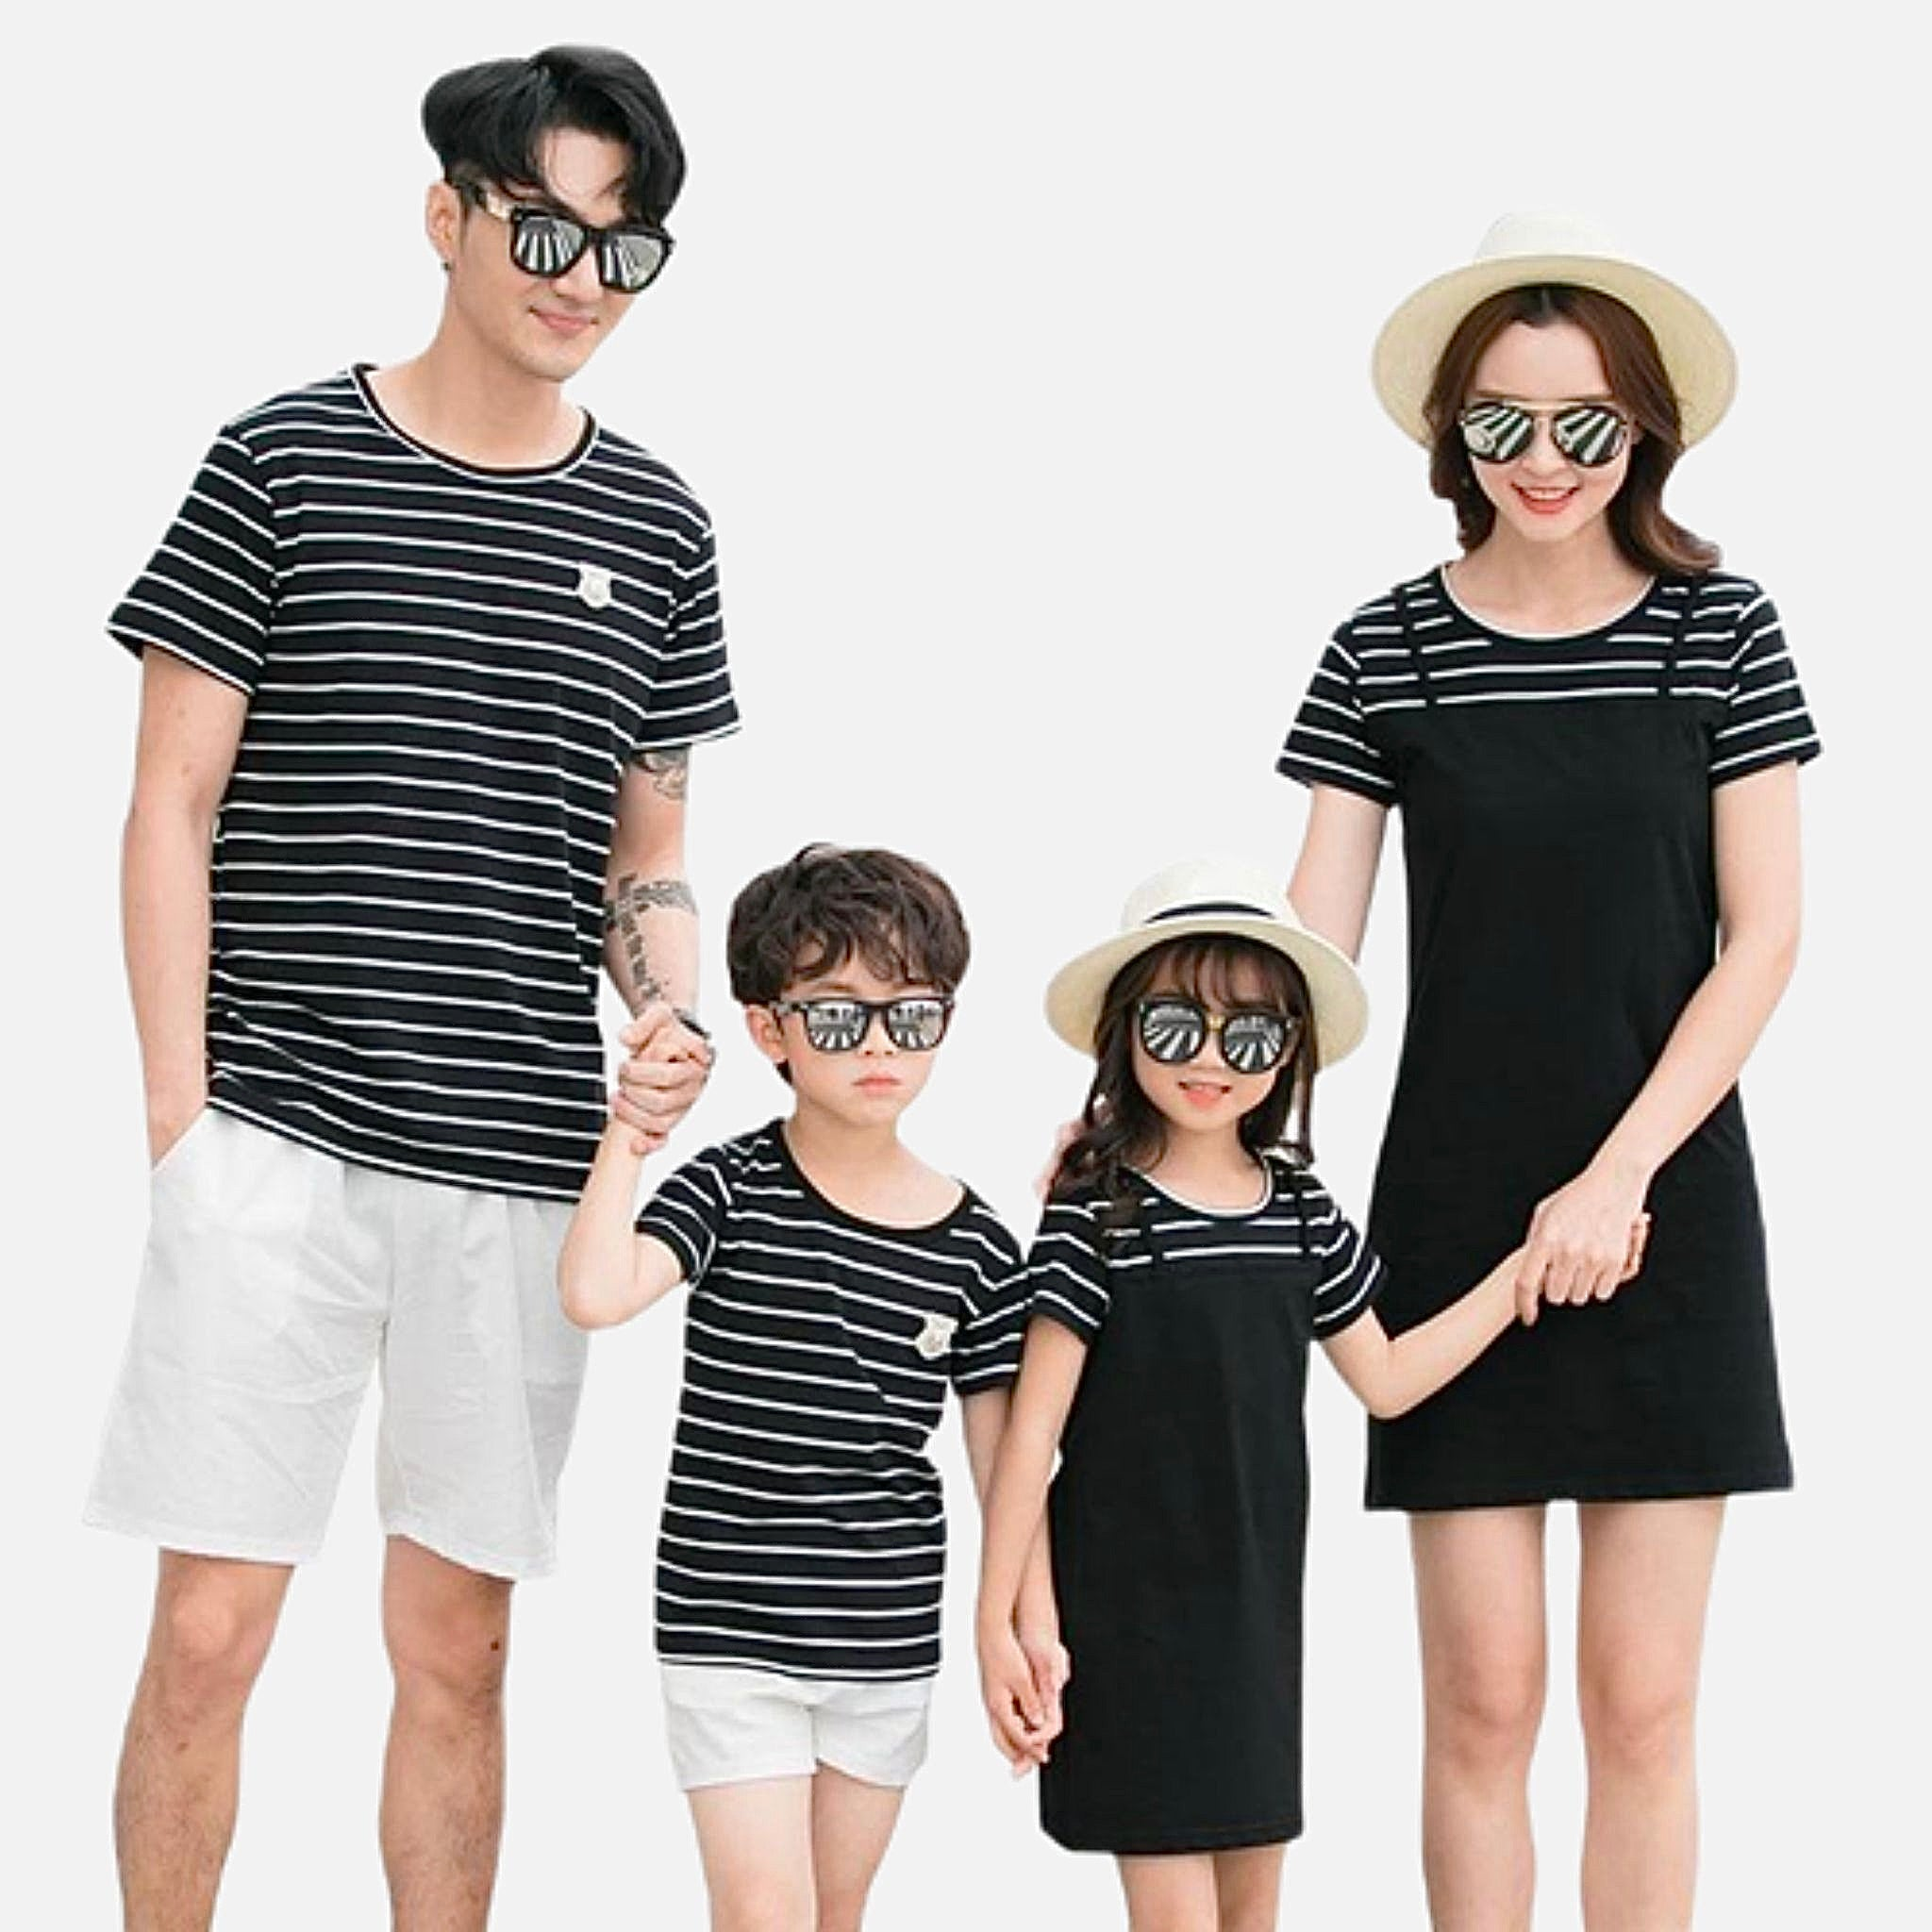 Family Match Sets   Mom girls midi dress black striped T-Shirt dad boys shorts Family matching outfits